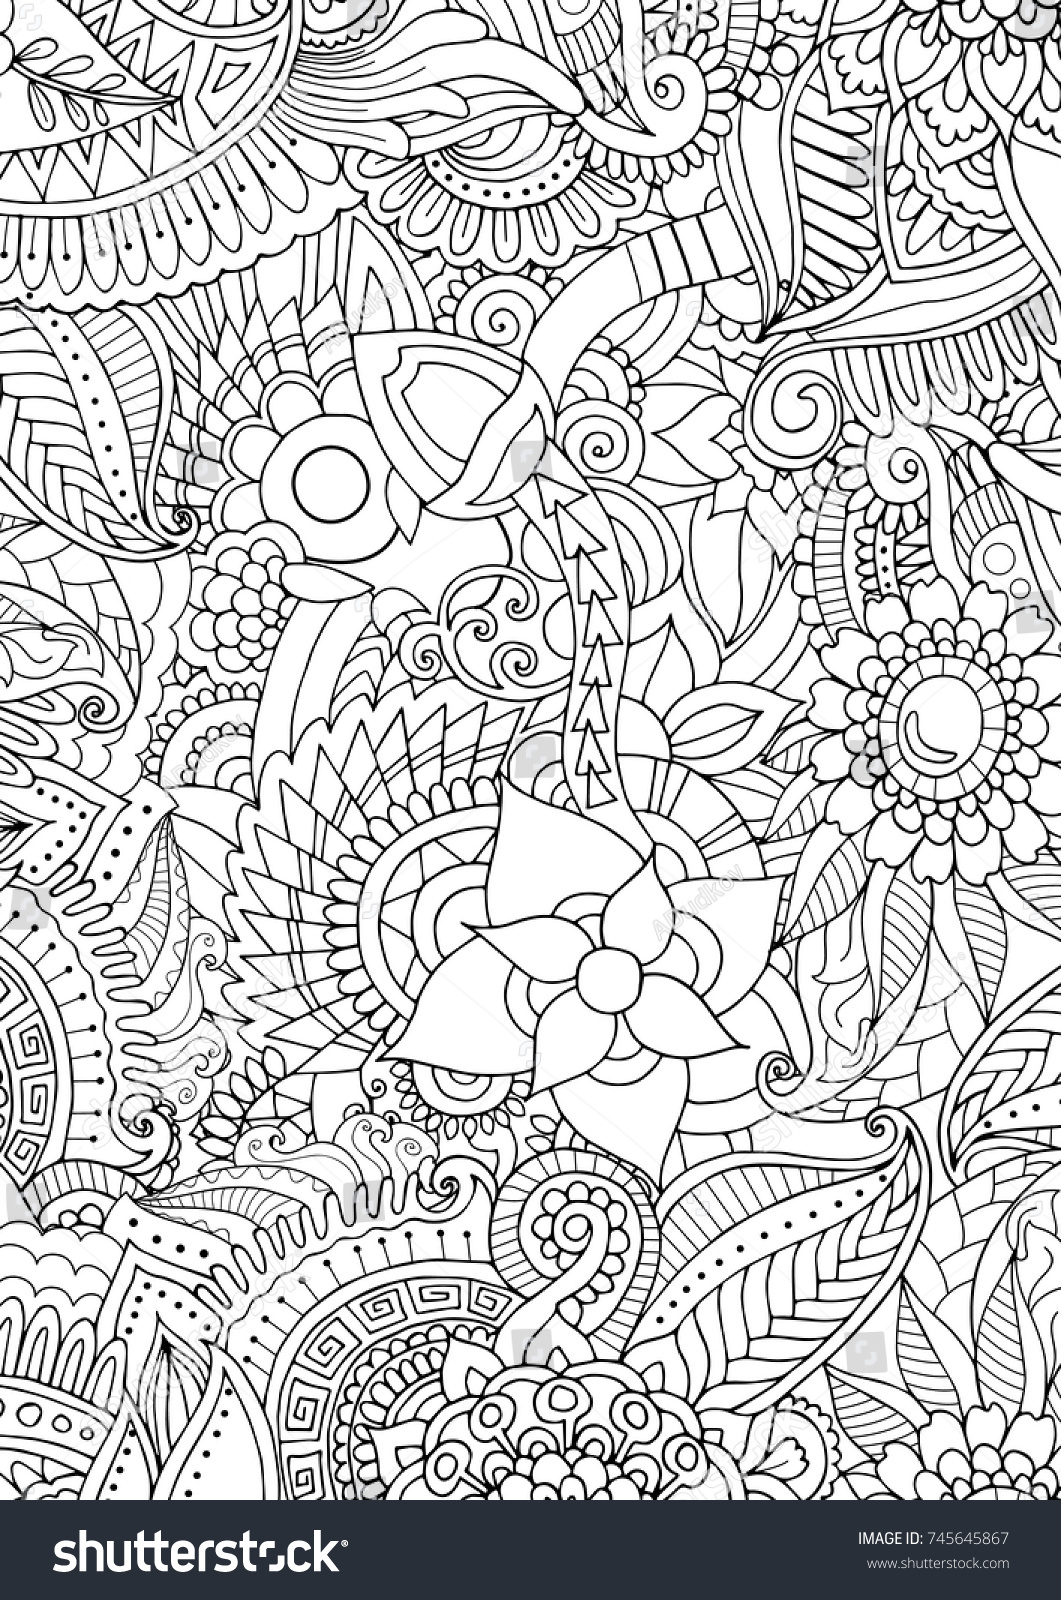 Fullpage A4 Zentangle Texture Background Adult Stock